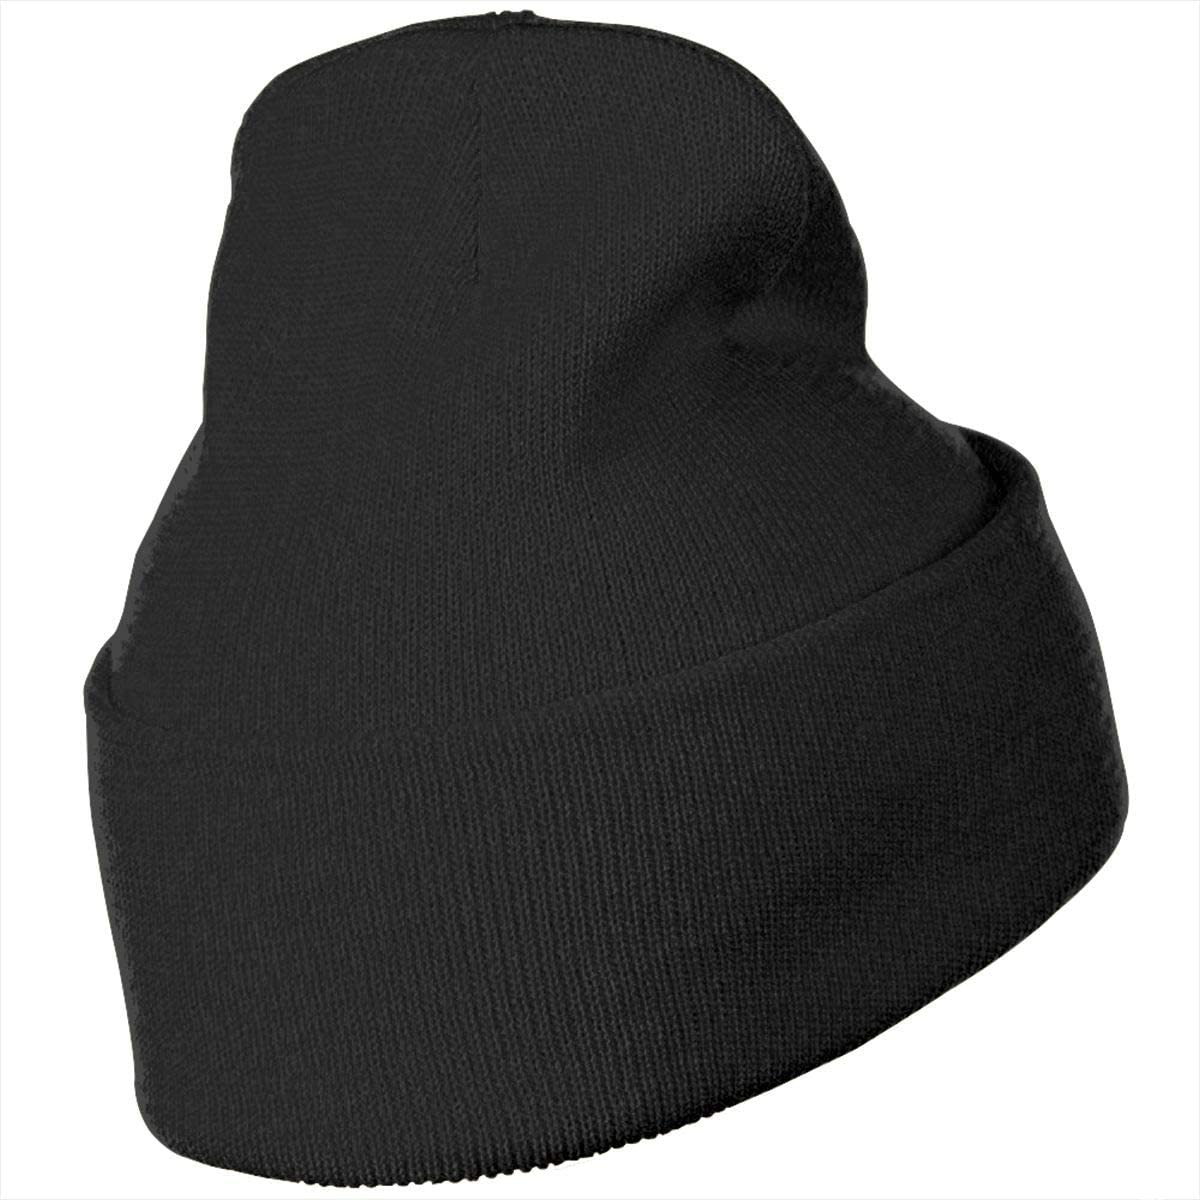 Unisex Mountain Climbing See You at The Top Running Beanie Cap Cuffed Plain Skull Cap Hat